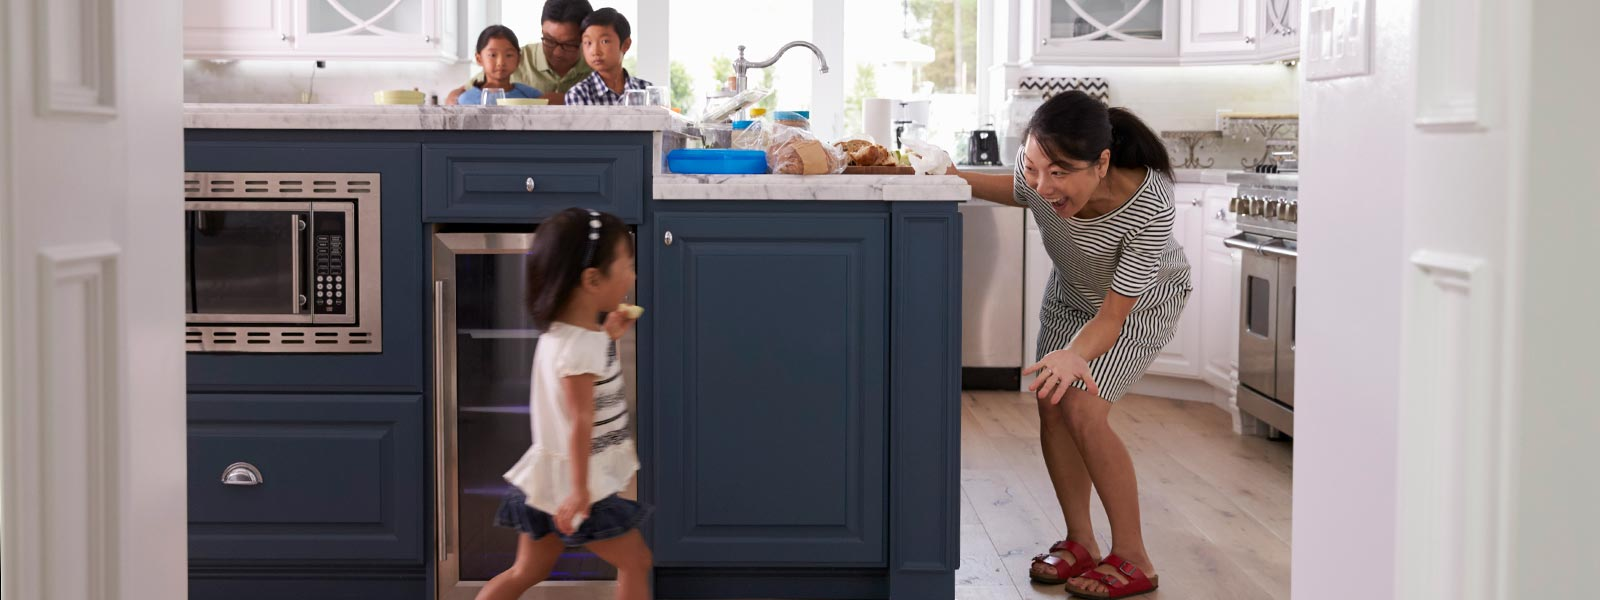 A mother playing with her daughter in a kitchen.